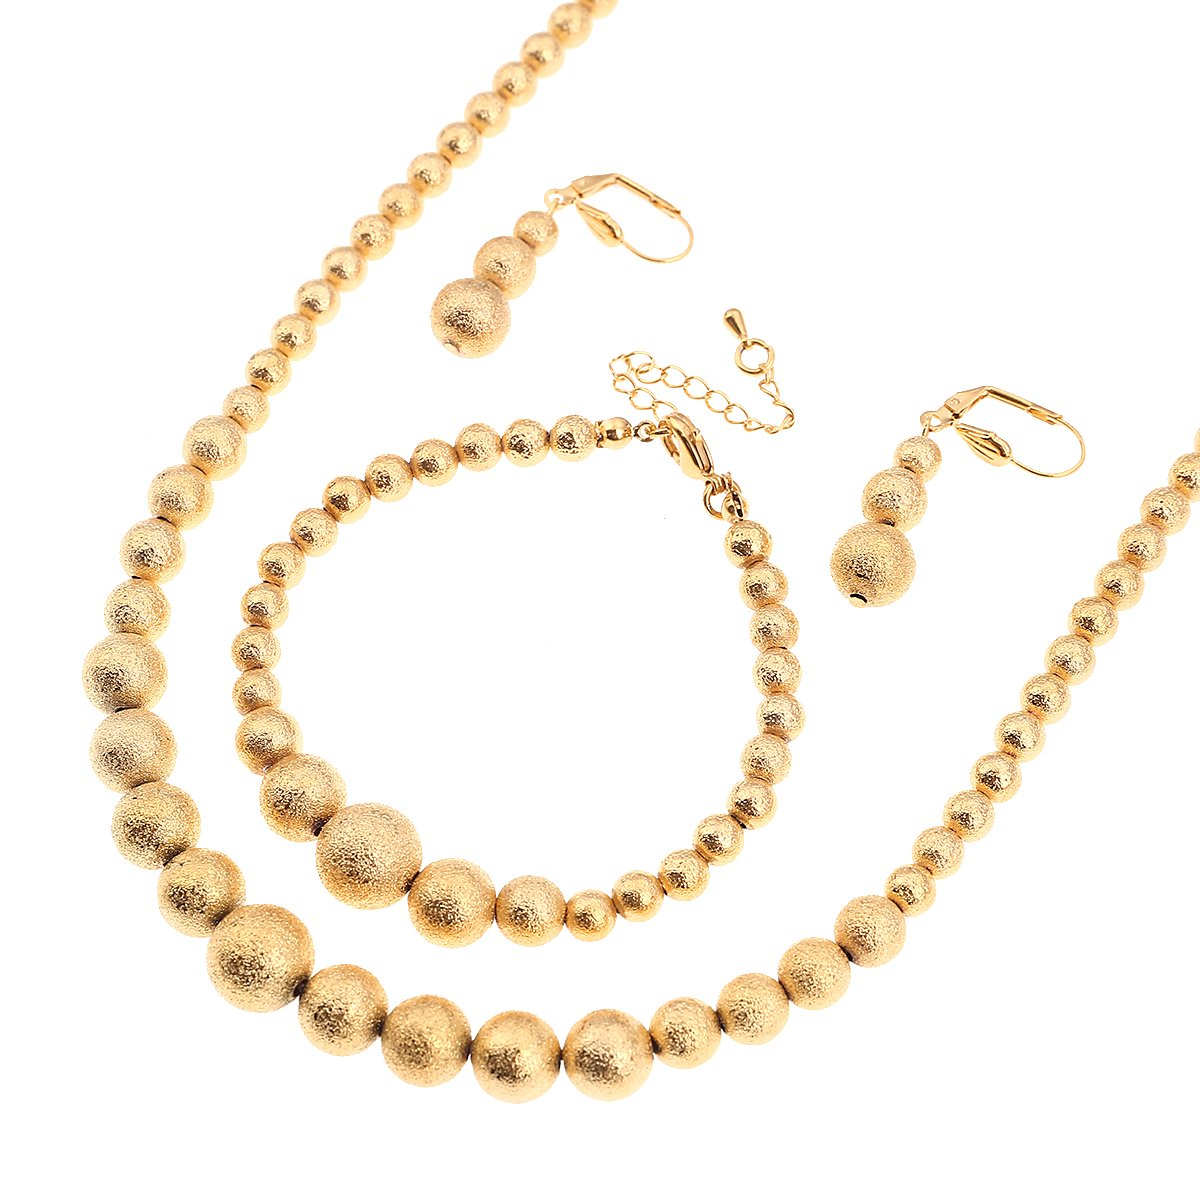 CB Gold Jewelry African Beaded Earrings Necklace Bracelet Set Glossy Bead Ball Ethiopian Yiwu CB Jewelry Co.ltd G1103